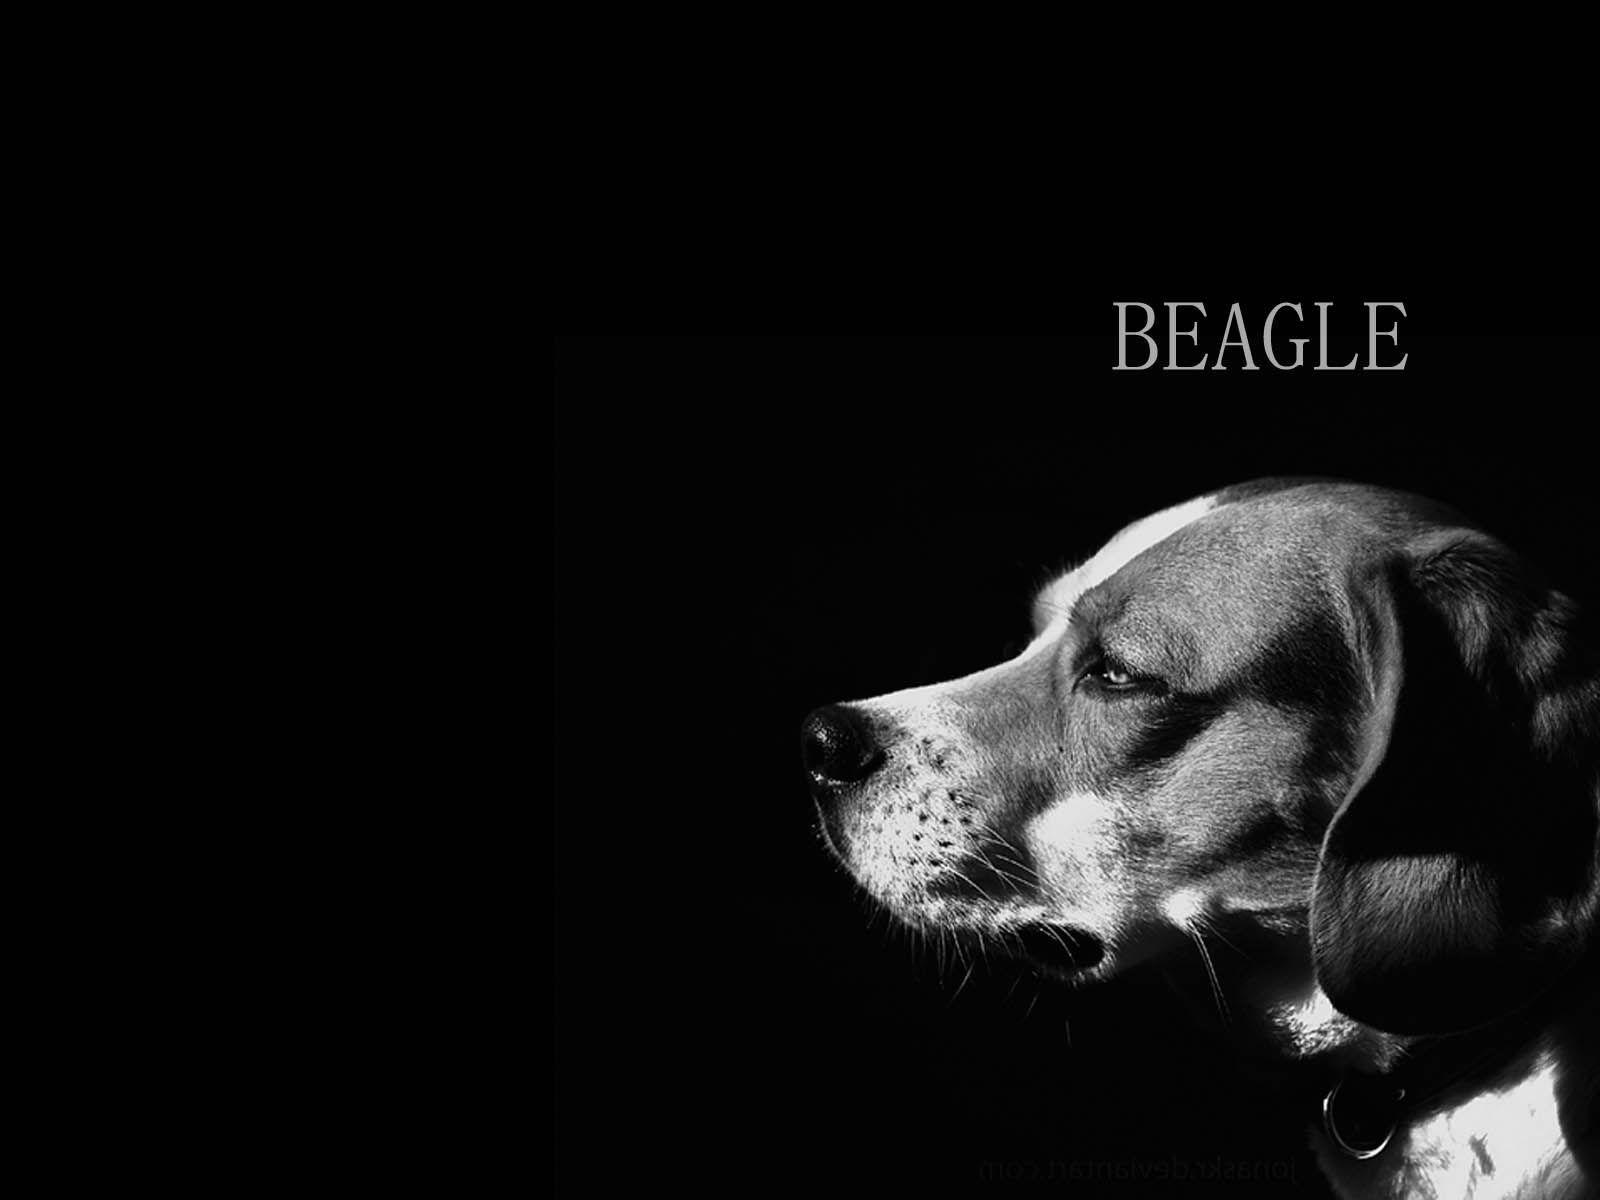 dog beagle guilty wallpapers - photo #34